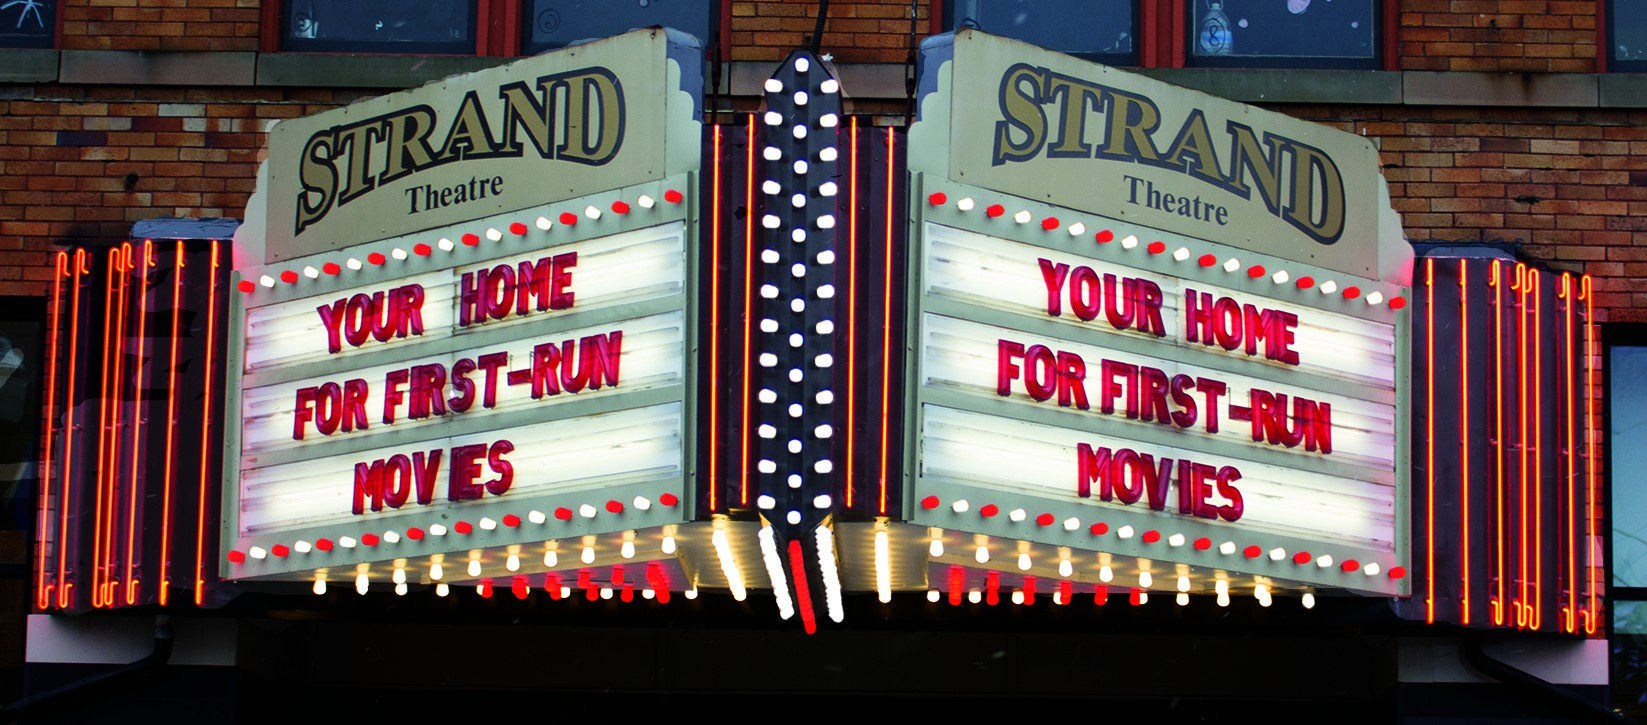 outside of Strand Theatre with old school movie theater sign